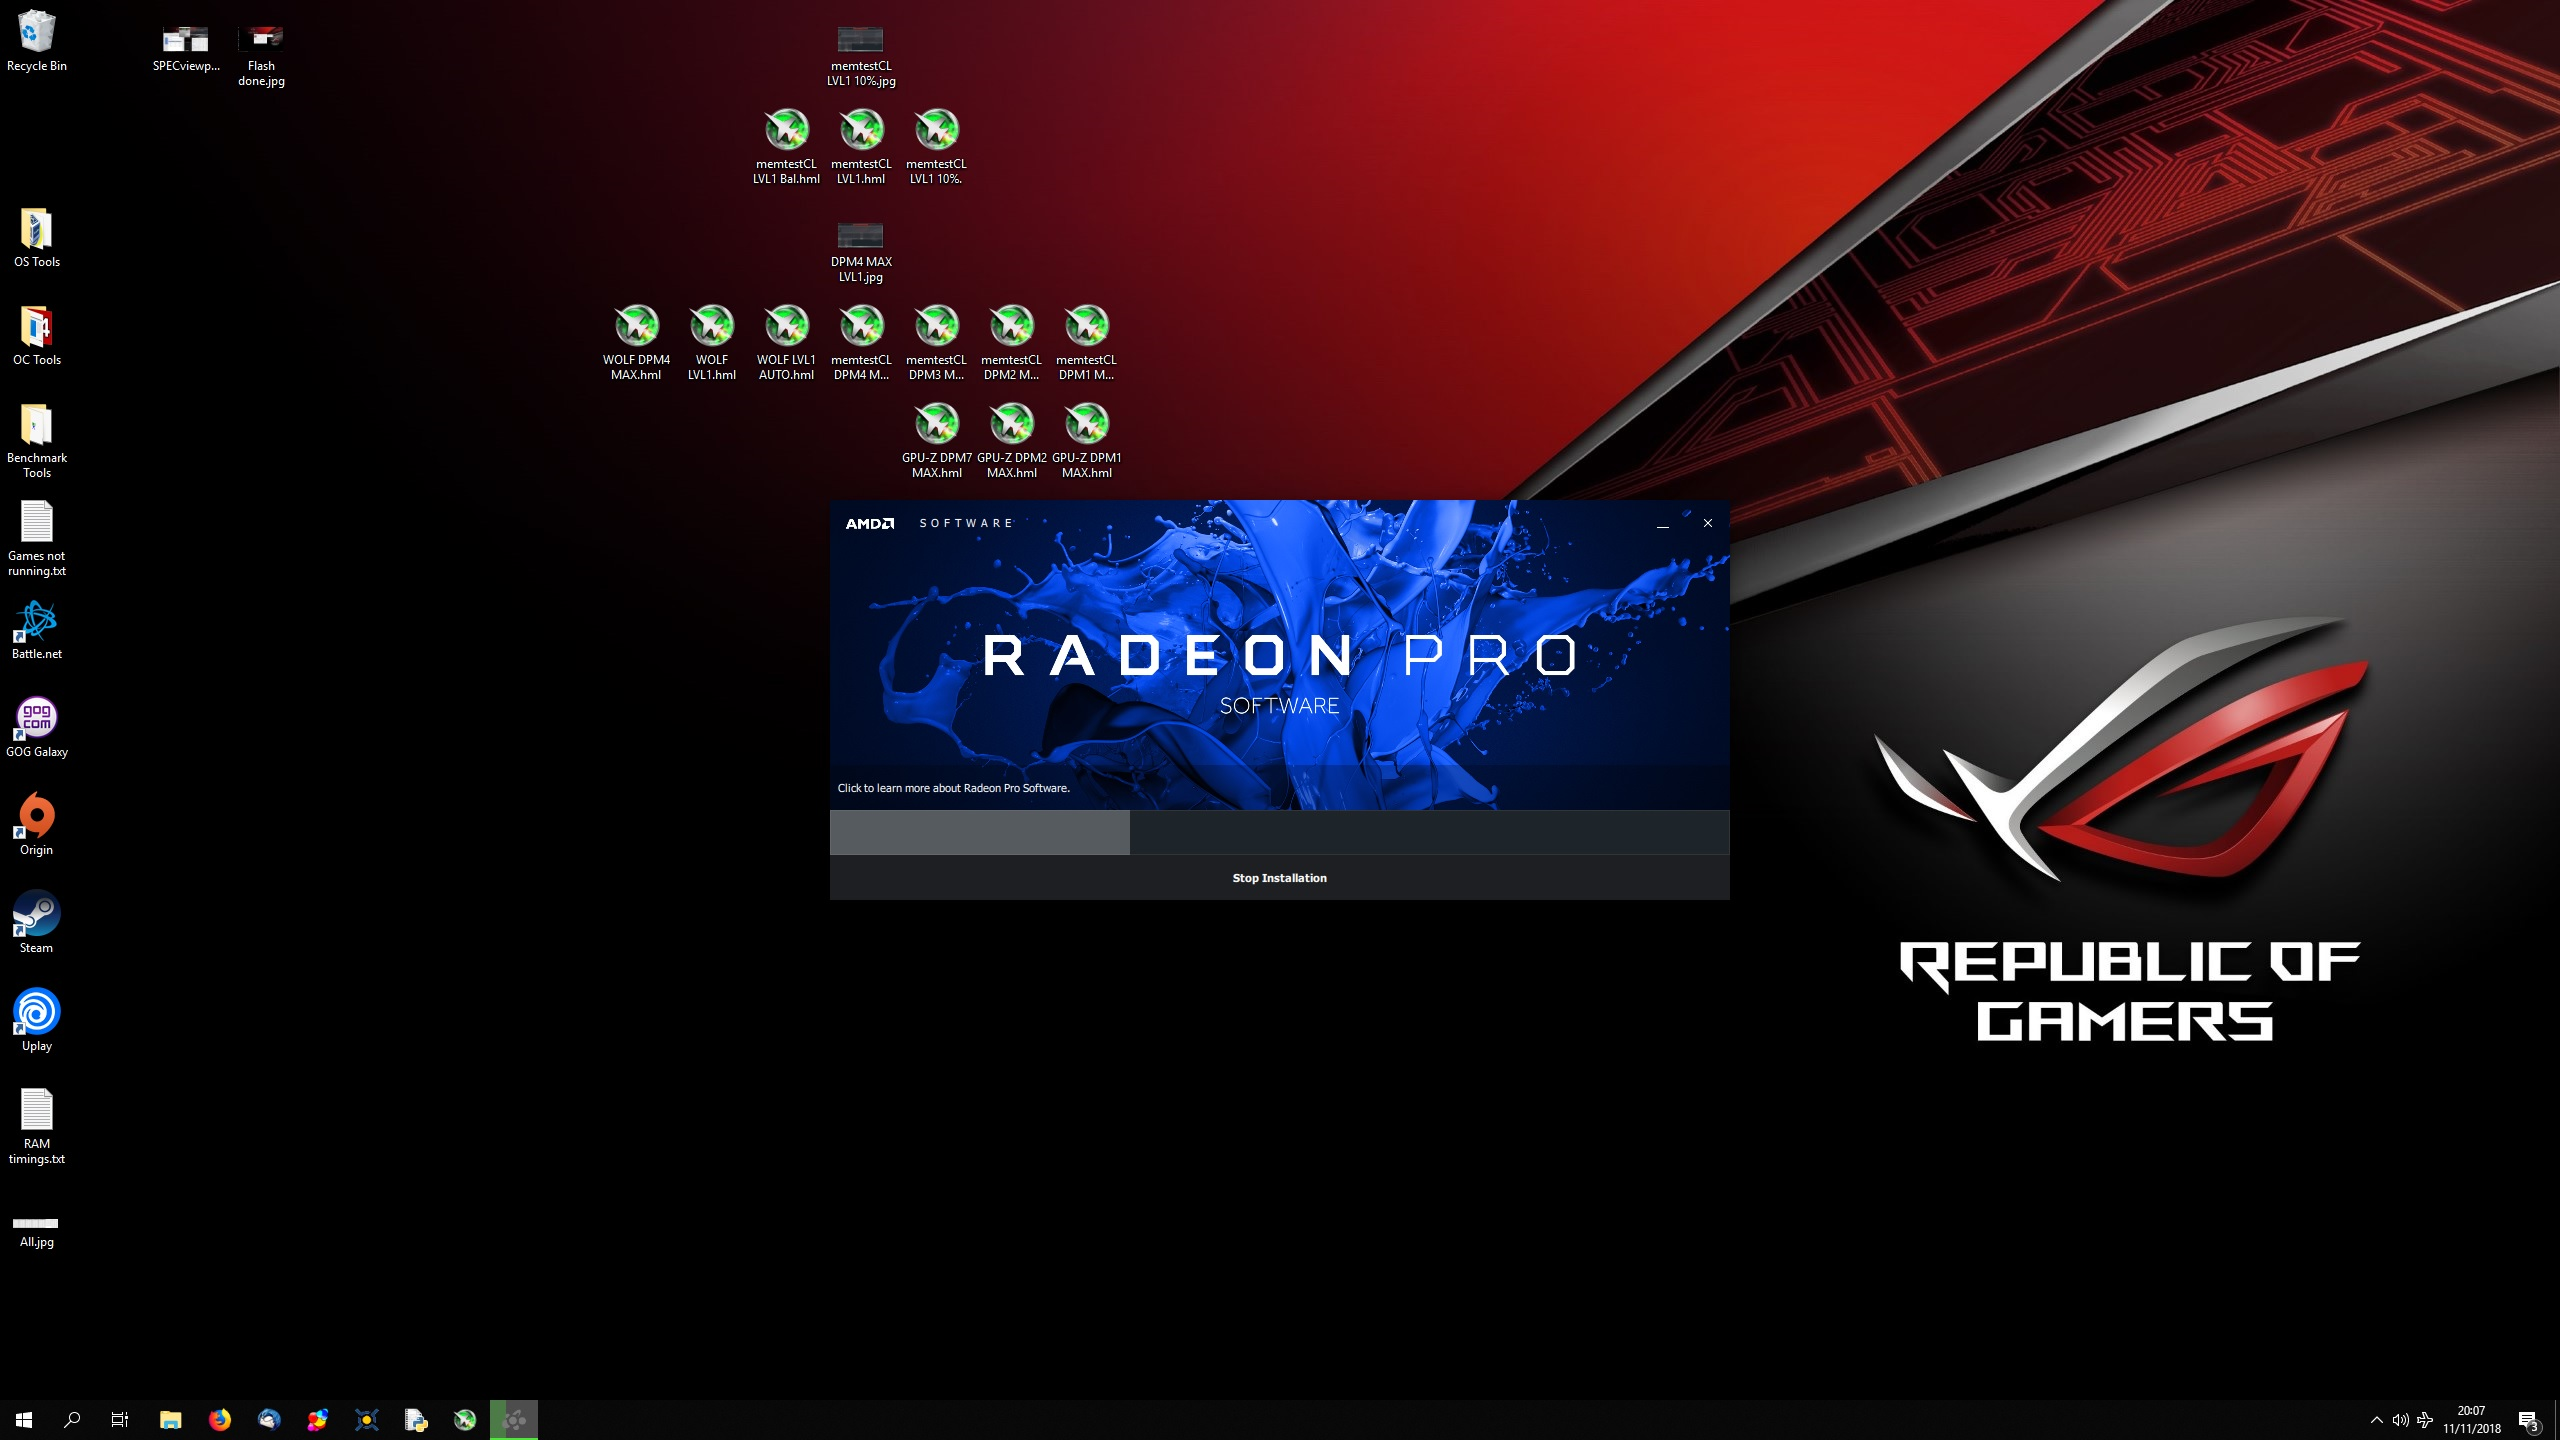 Click image for larger version  Name:Radeon Pro.jpg Views:60 Size:409.2 KB ID:230756